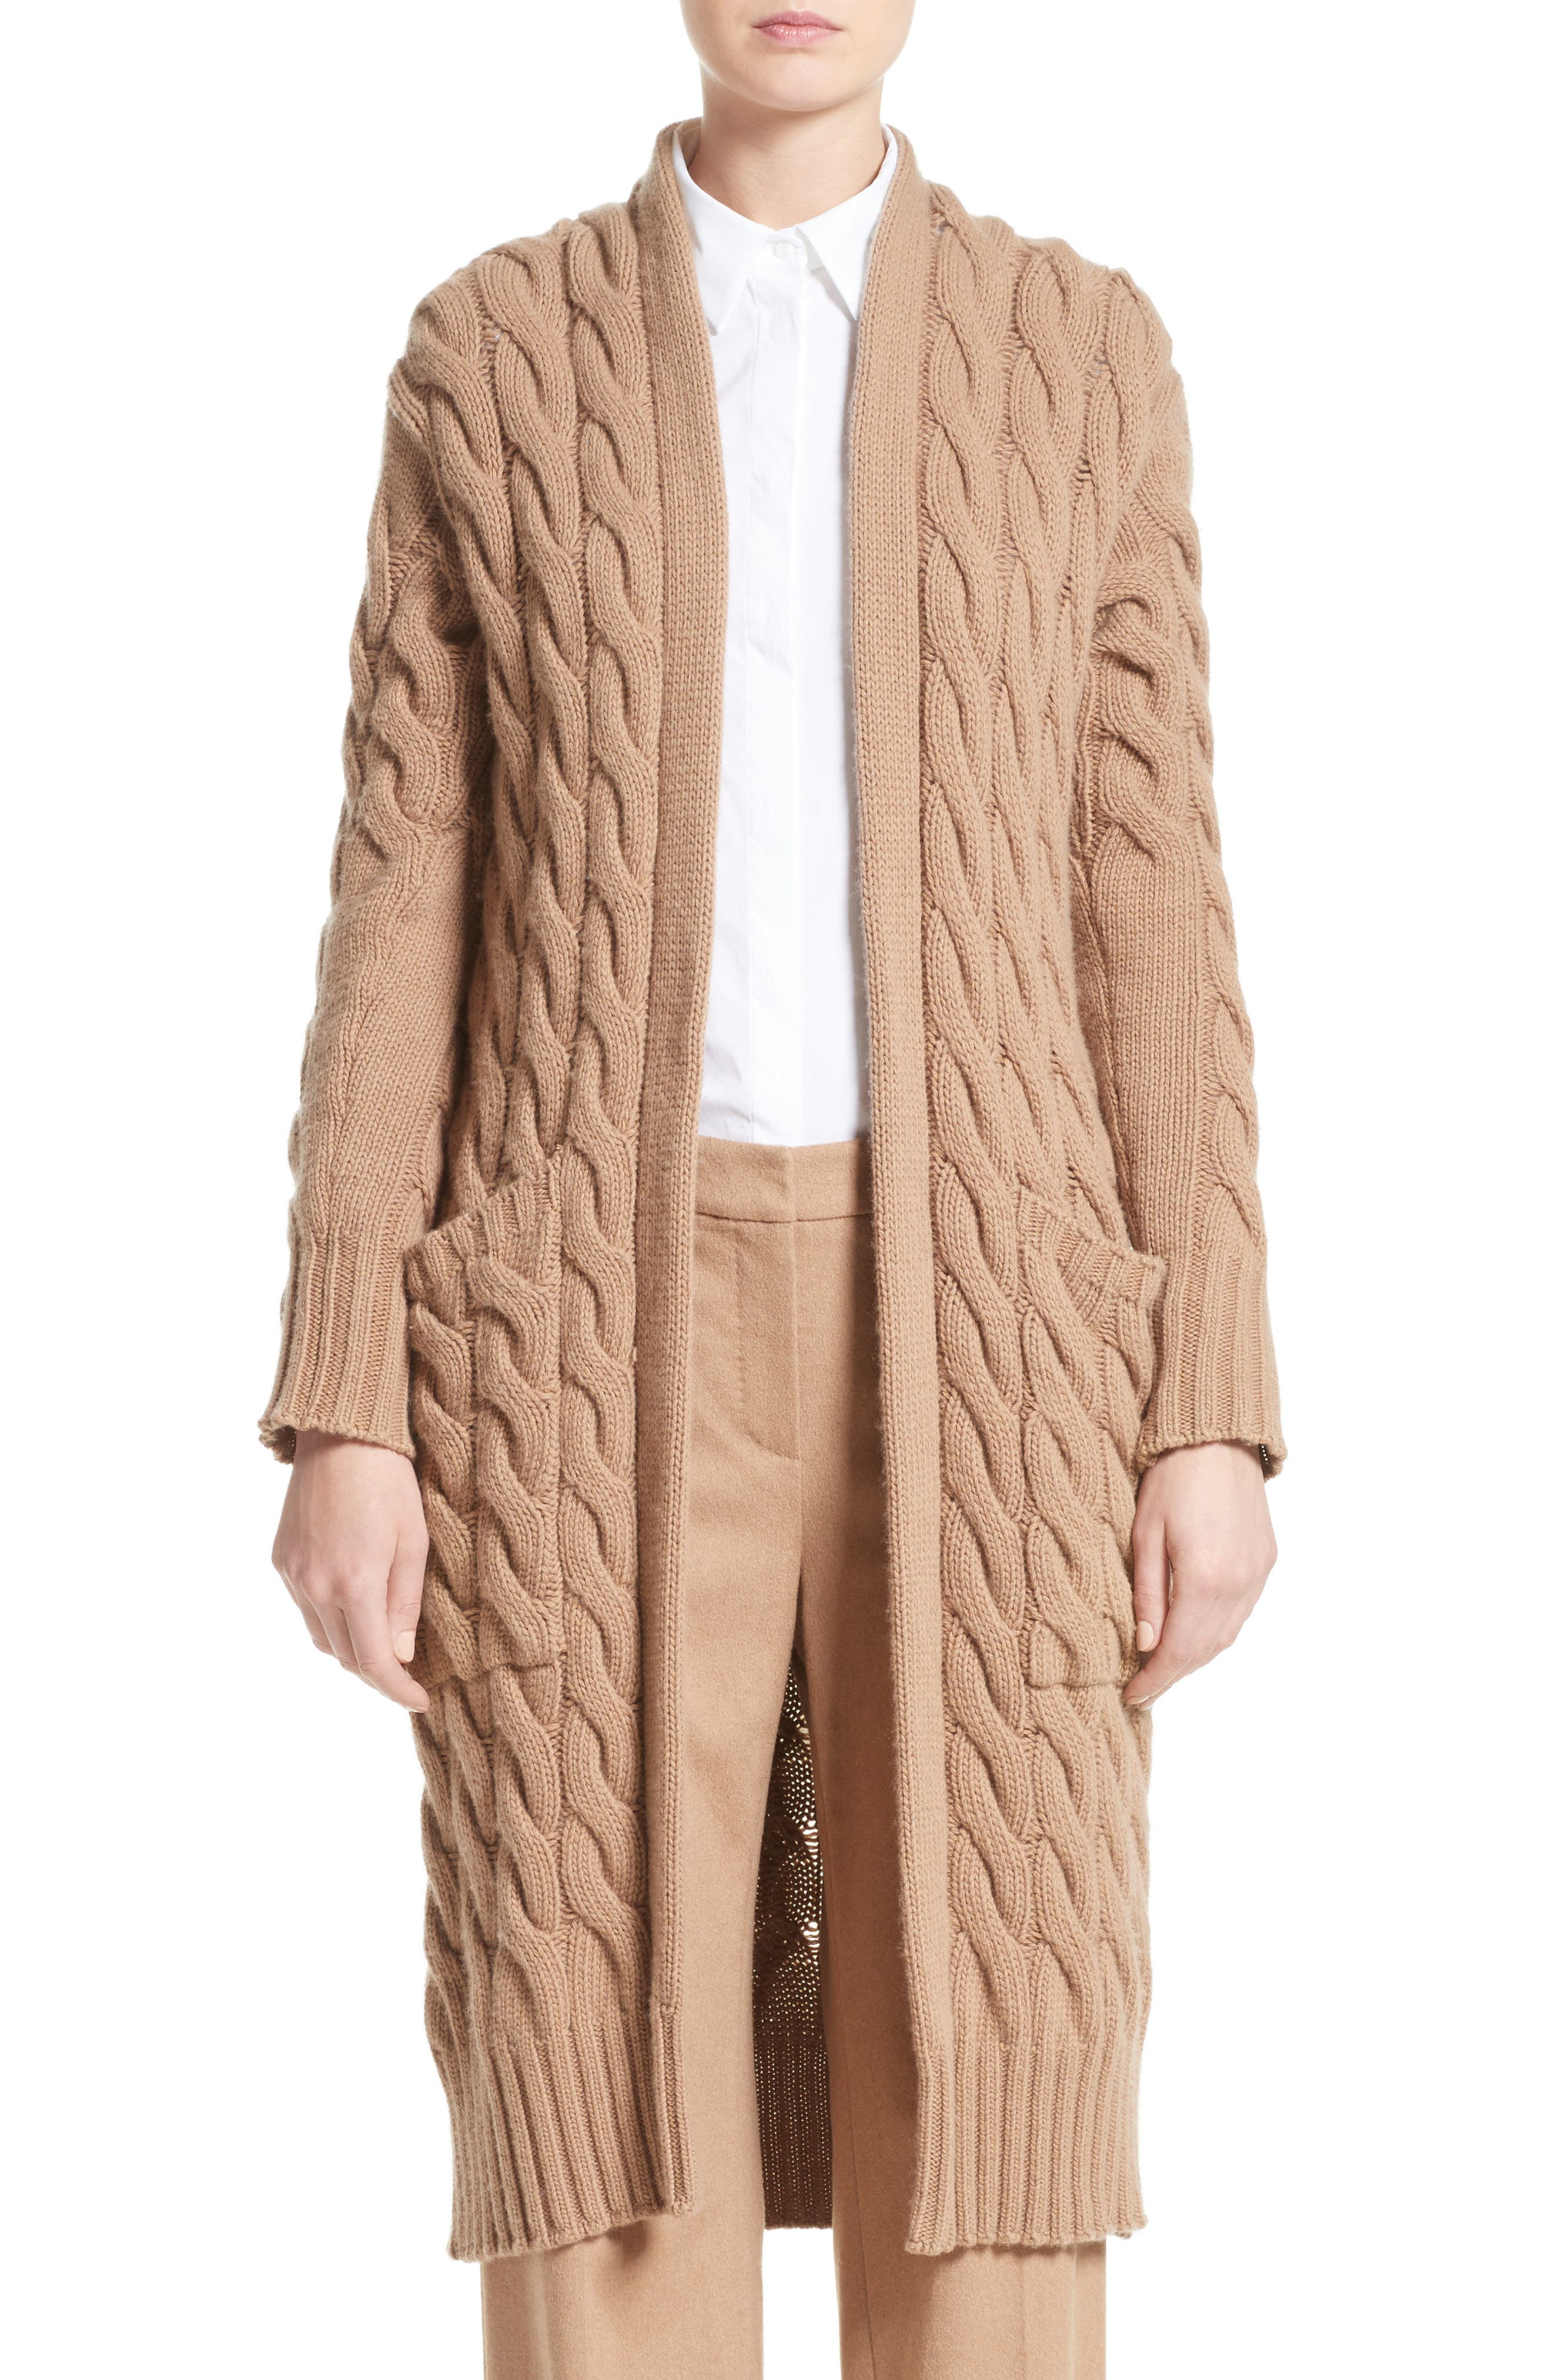 Max Mara Violino Cable Knit Wool & Cashmere Cardigan